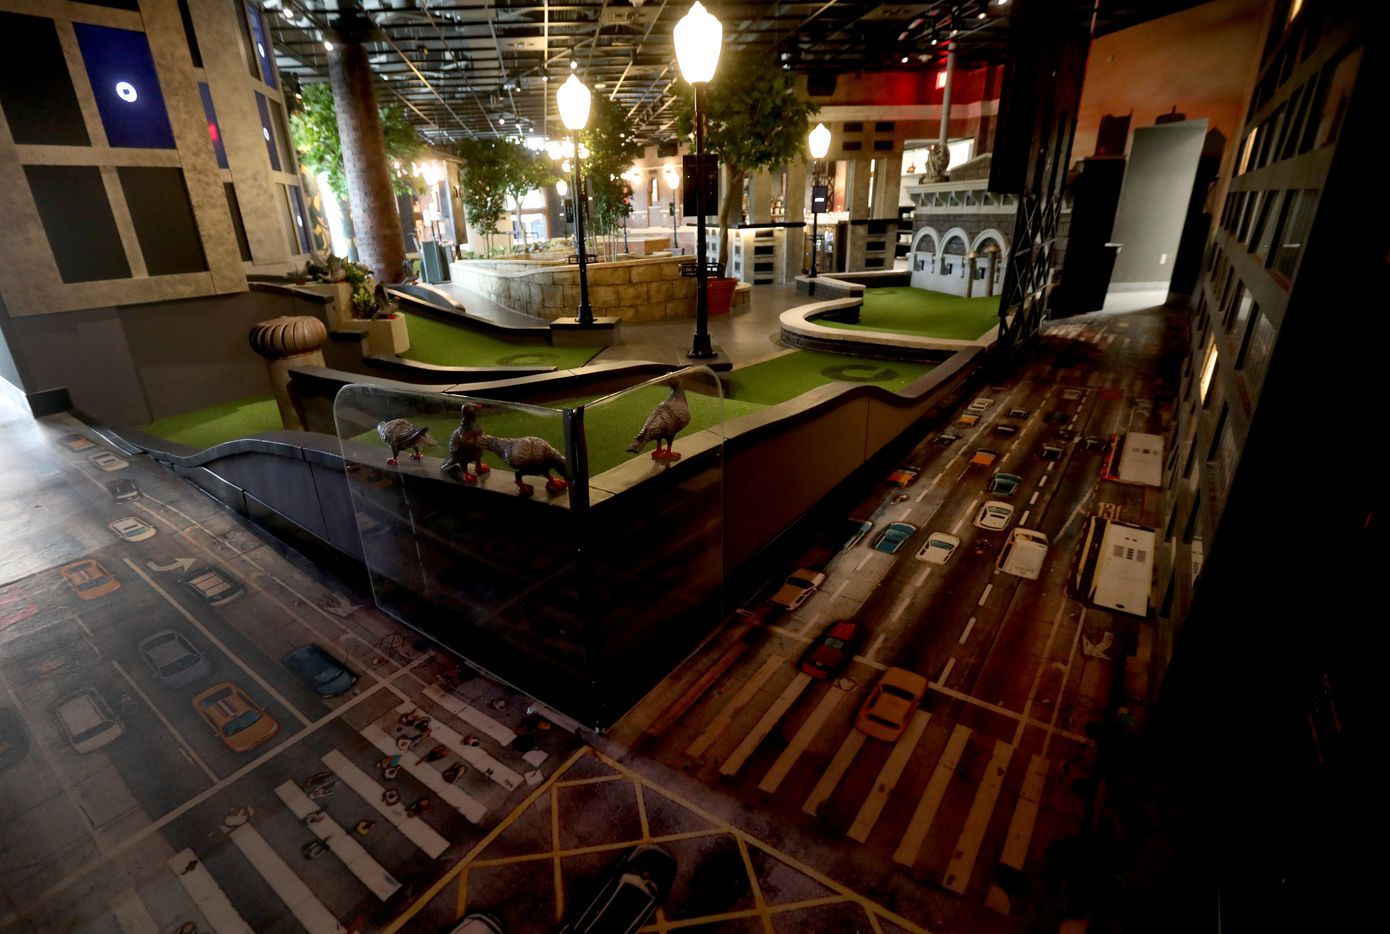 A hole in the Rooftop room at Puttery, a new indoor mini golf and entertainment concept in The Colony, Texas, Monday, August 30, 2021.